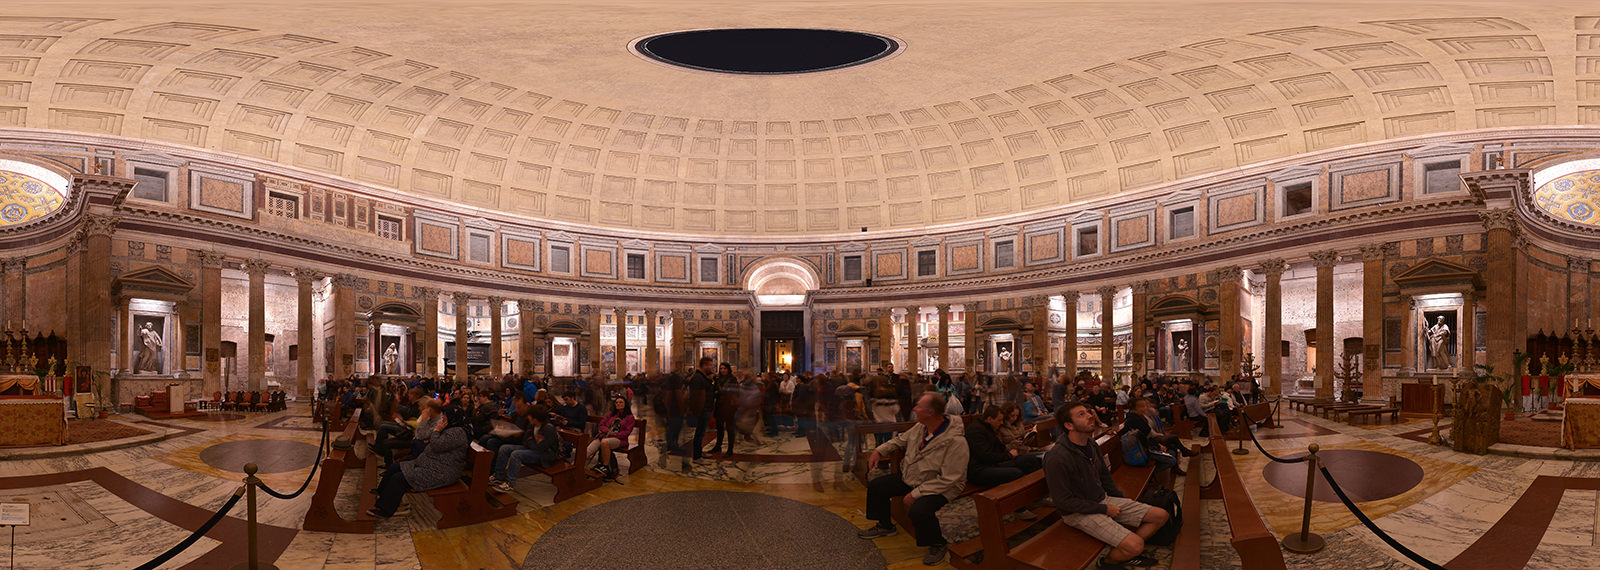 Inside Pantheon, Roma - Virtual tour